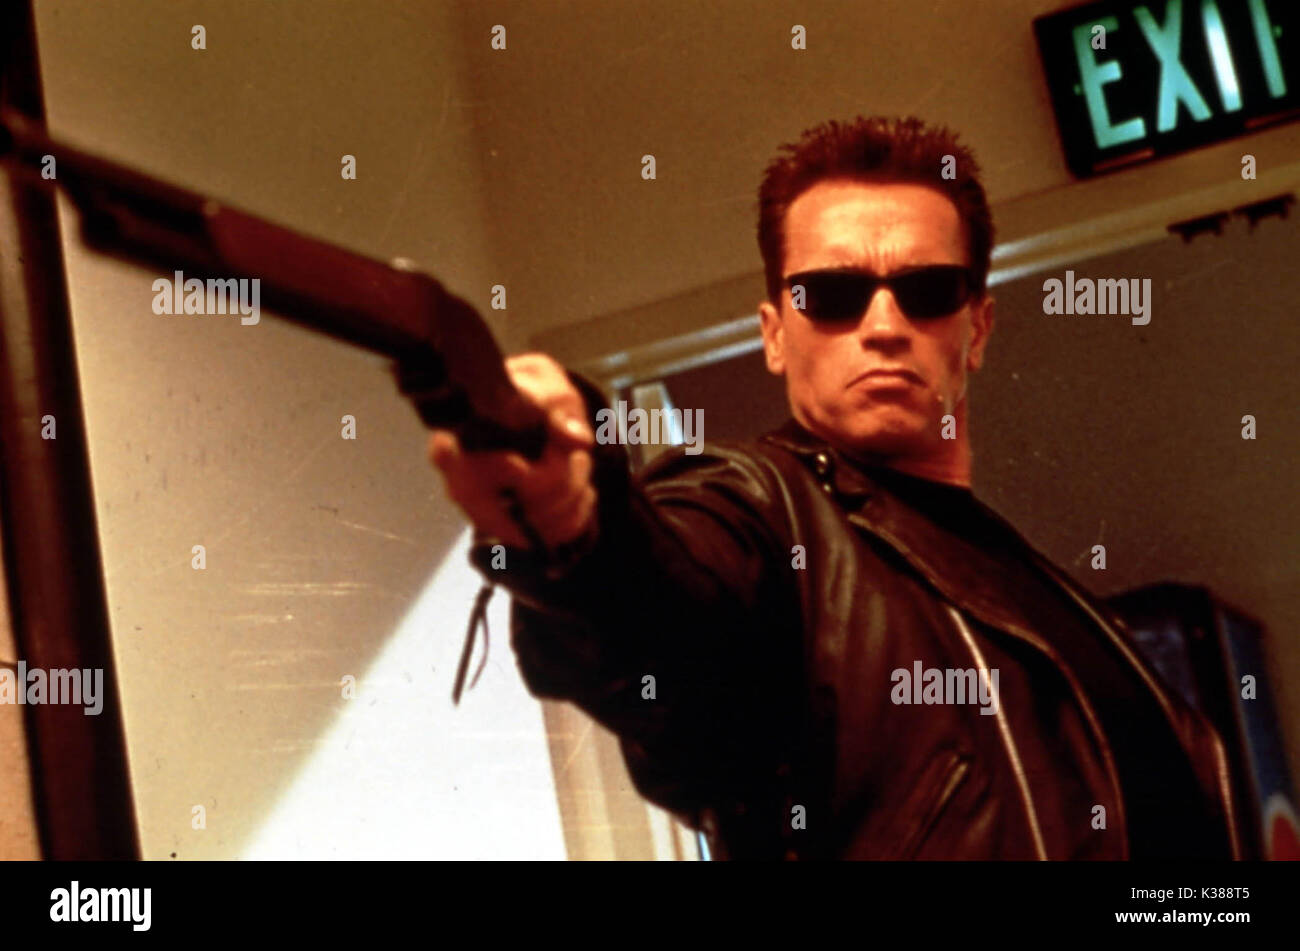 c0db09673c TERMINATOR 2 JUDGEMENT DAY ARNOLD SCHWARZENEGGER Date  1991 Stock ...